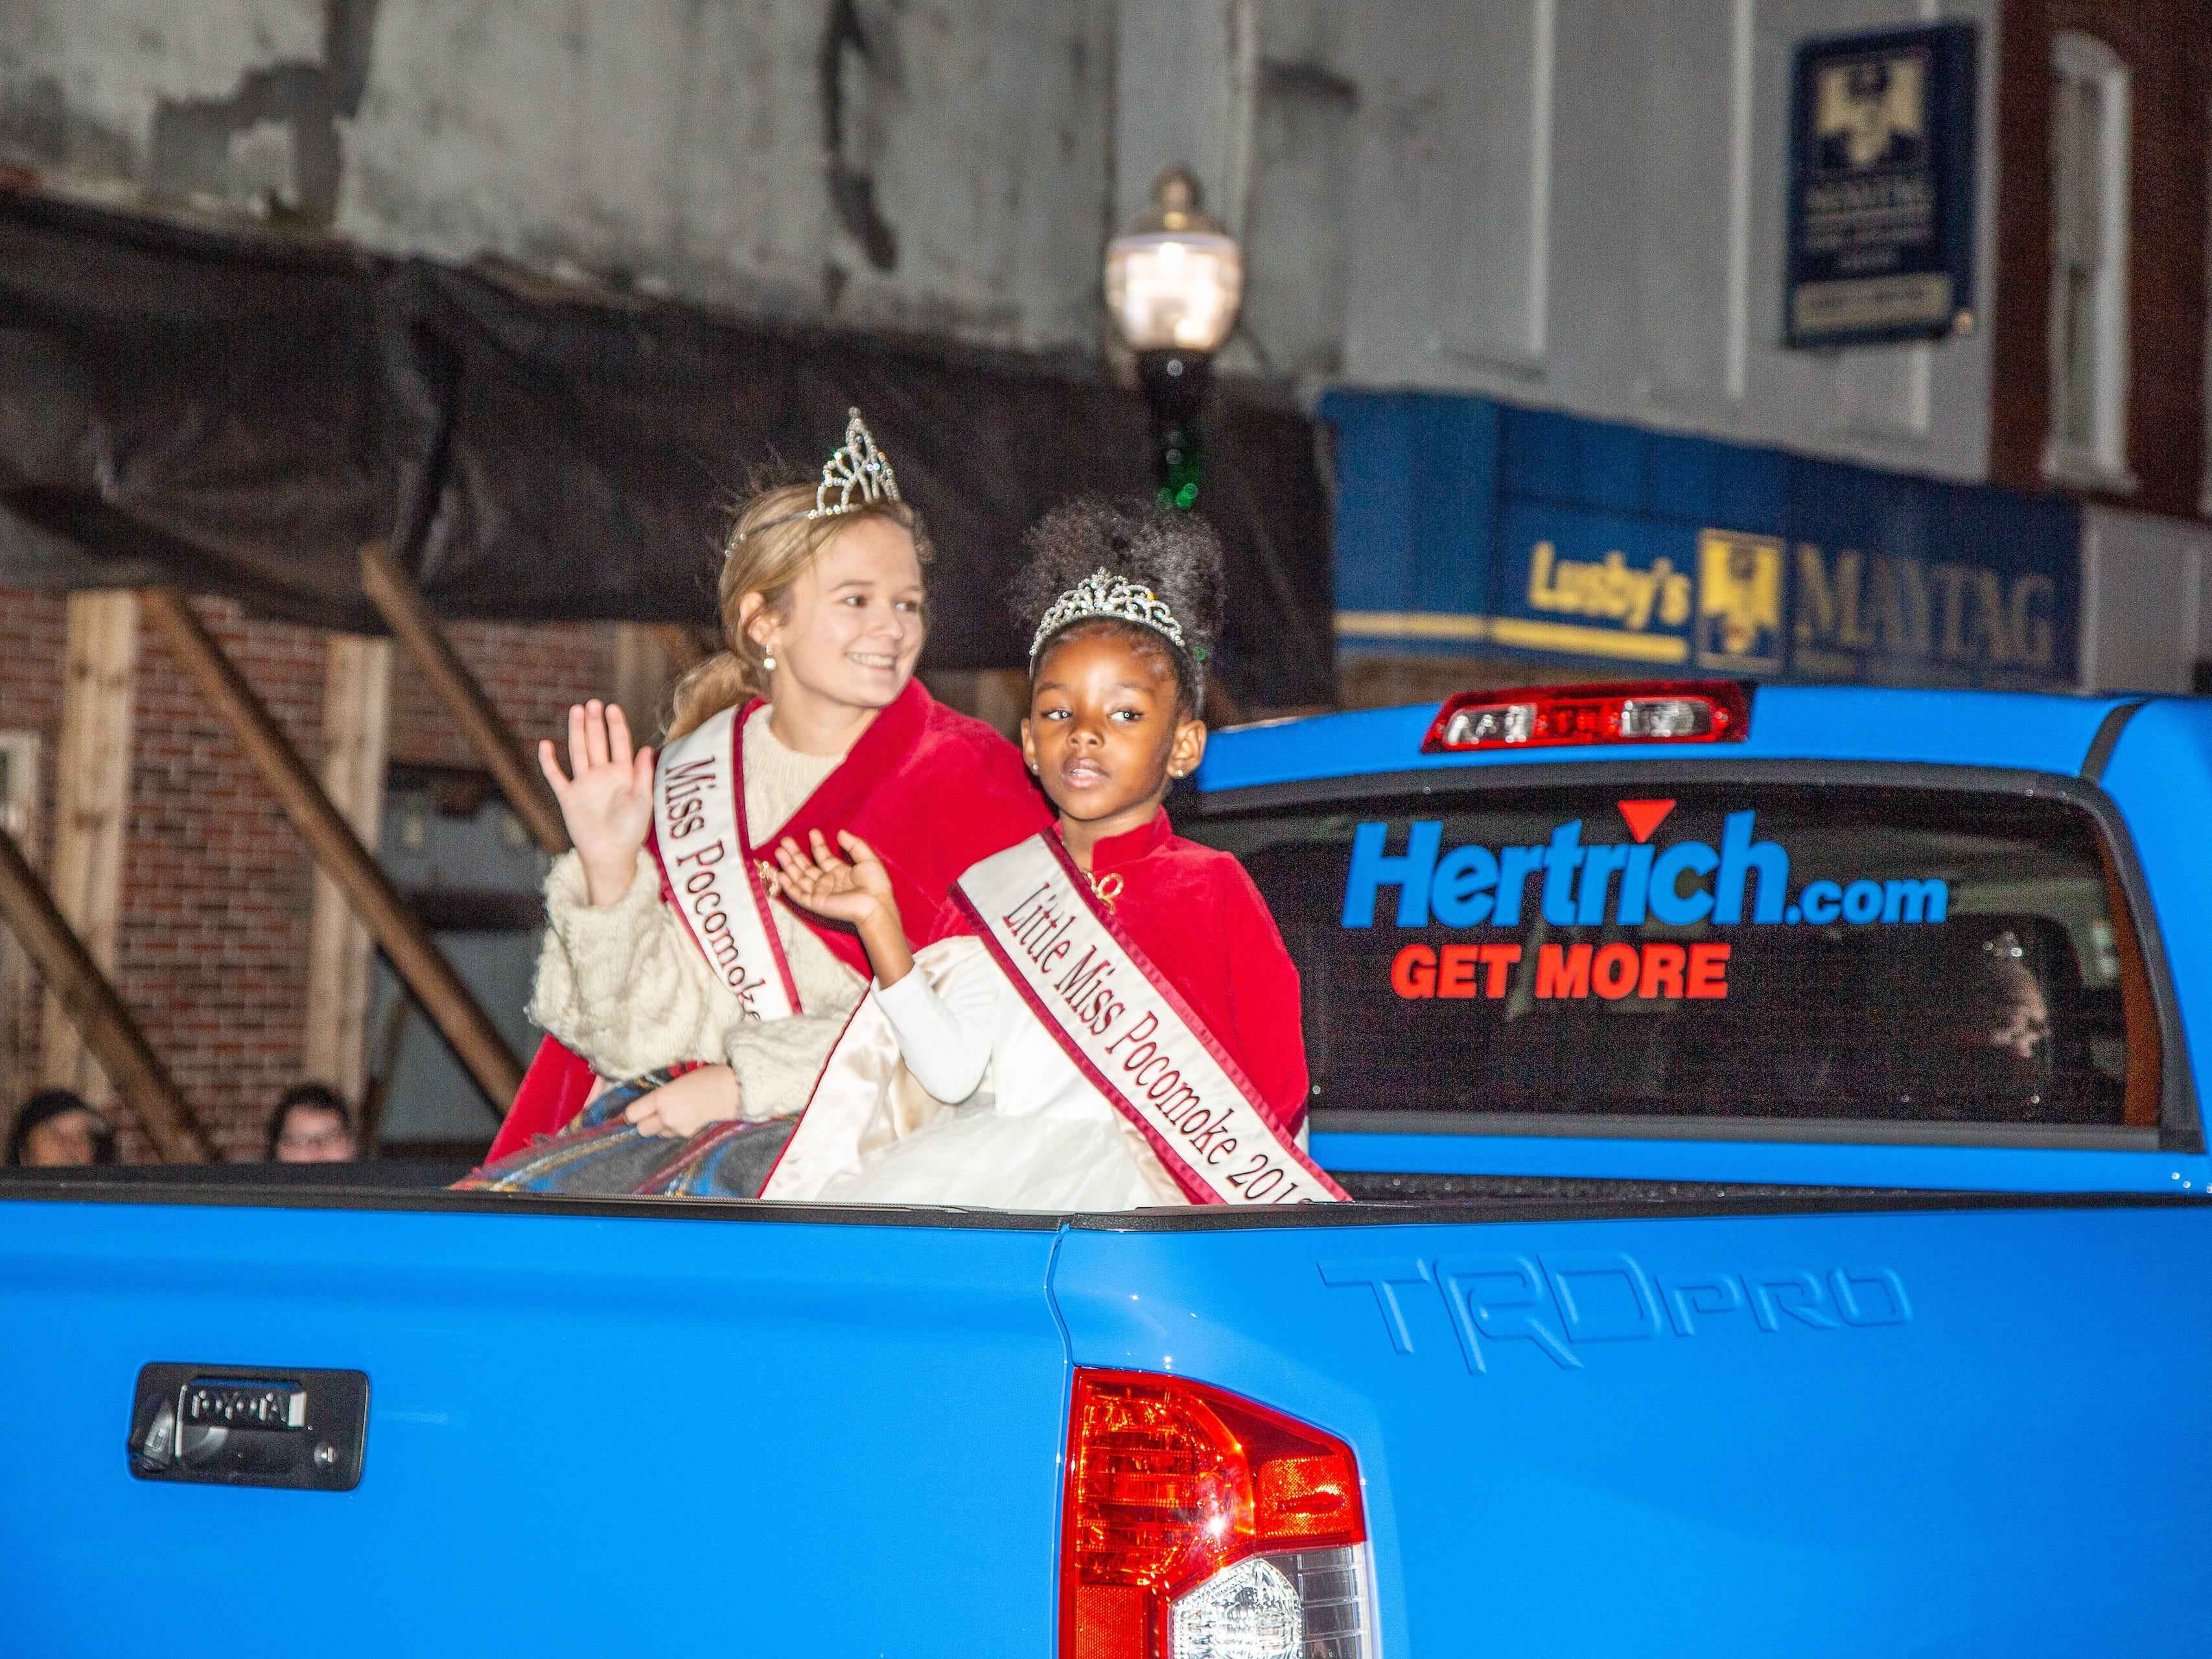 Miss and Little Miss Pocomoke ride in the town's annual Christmas parade.